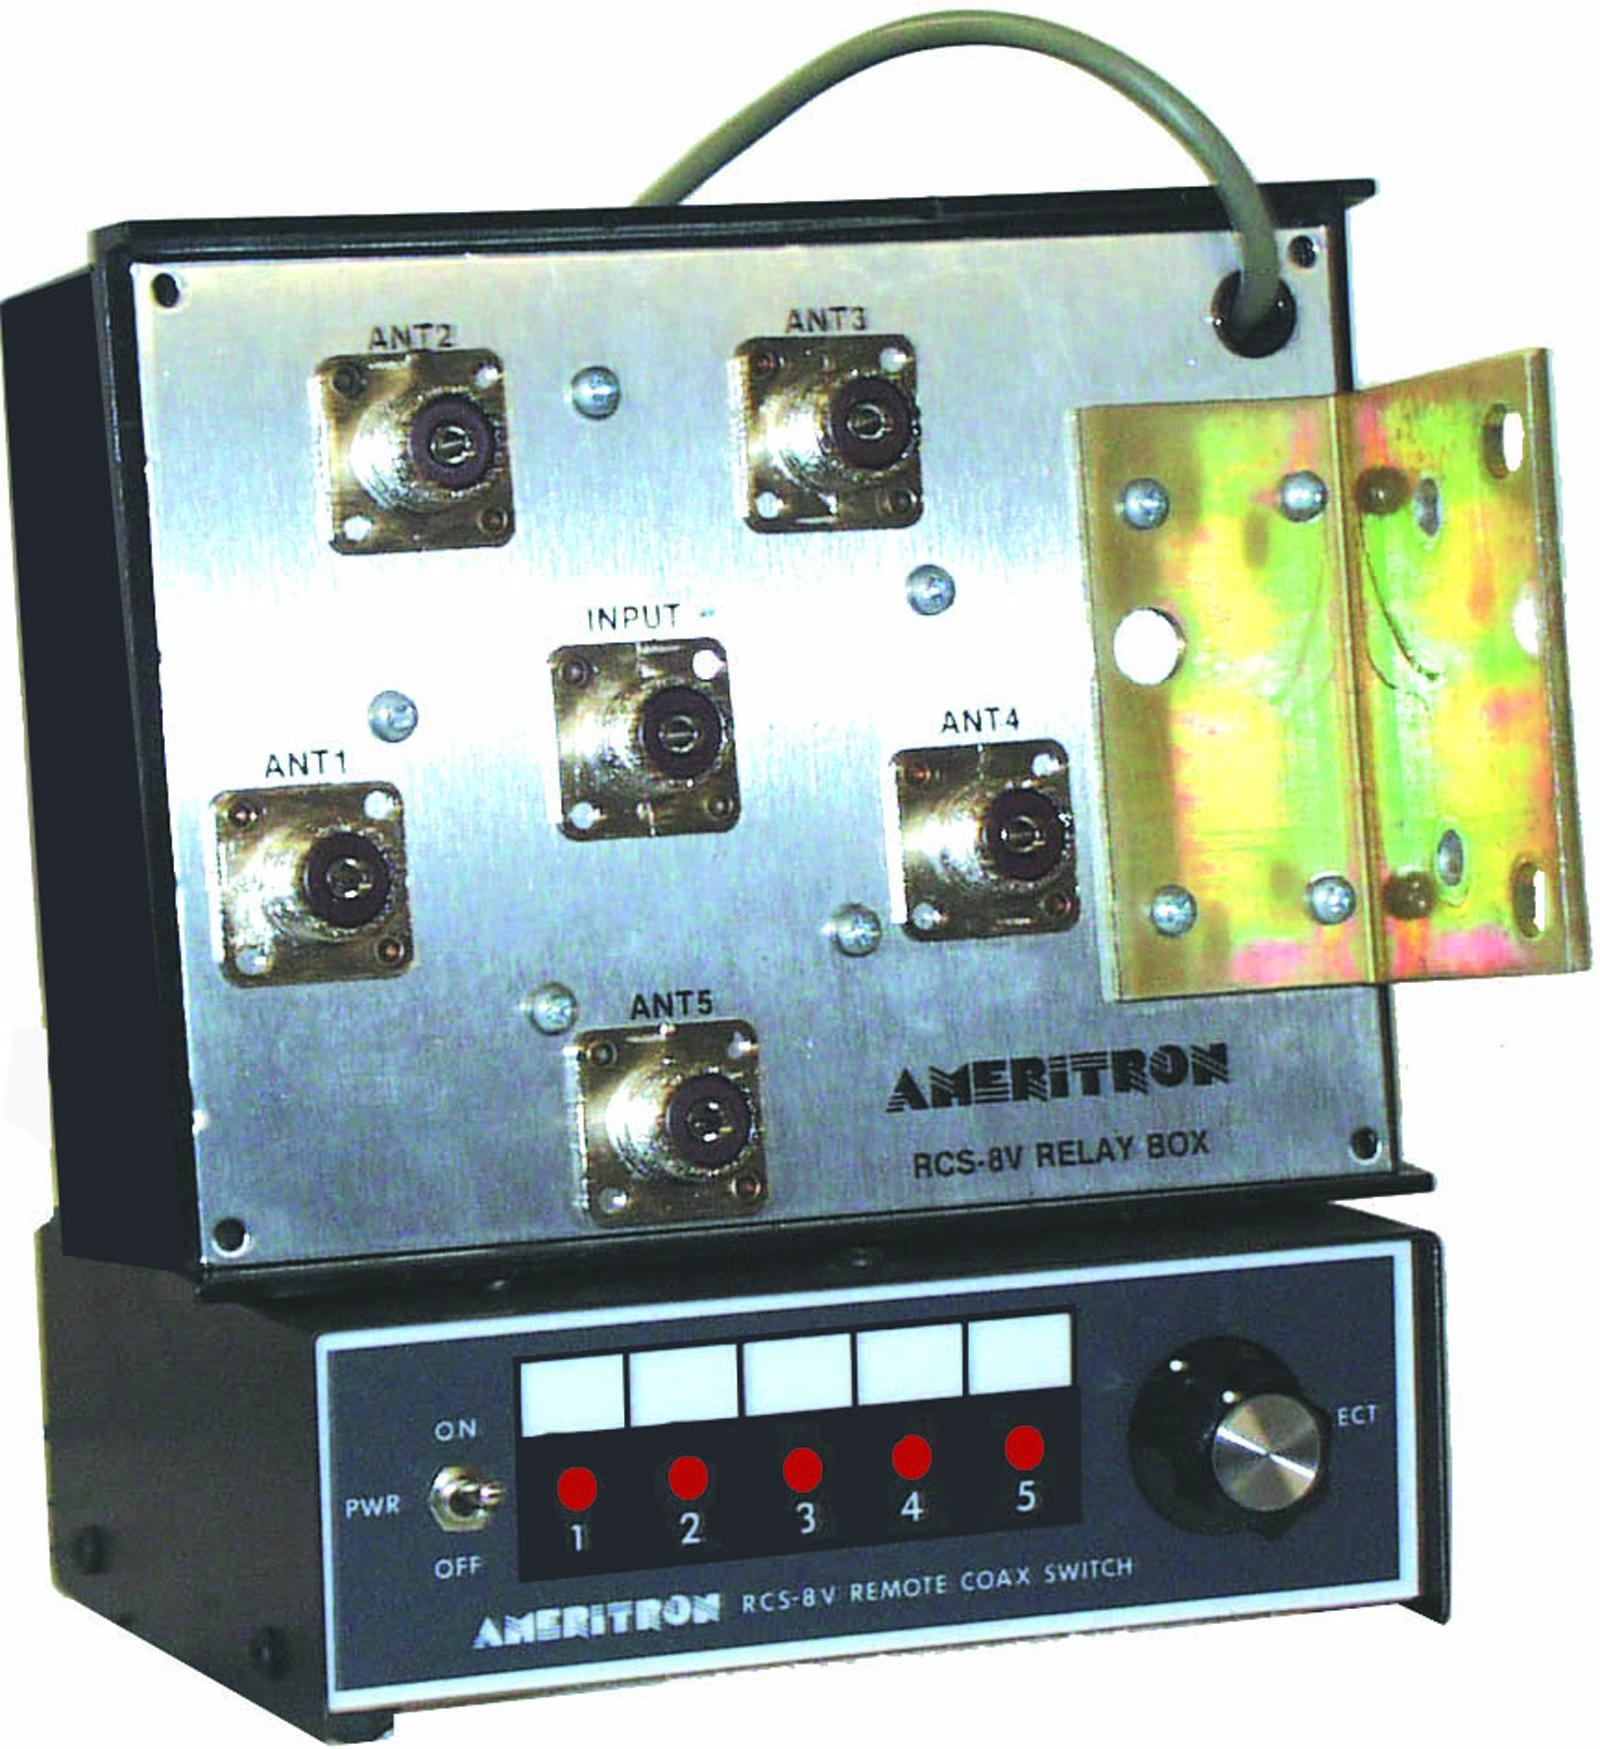 Ameritron 5-way Remote Coax Switch (SO-239) RCS-8VX